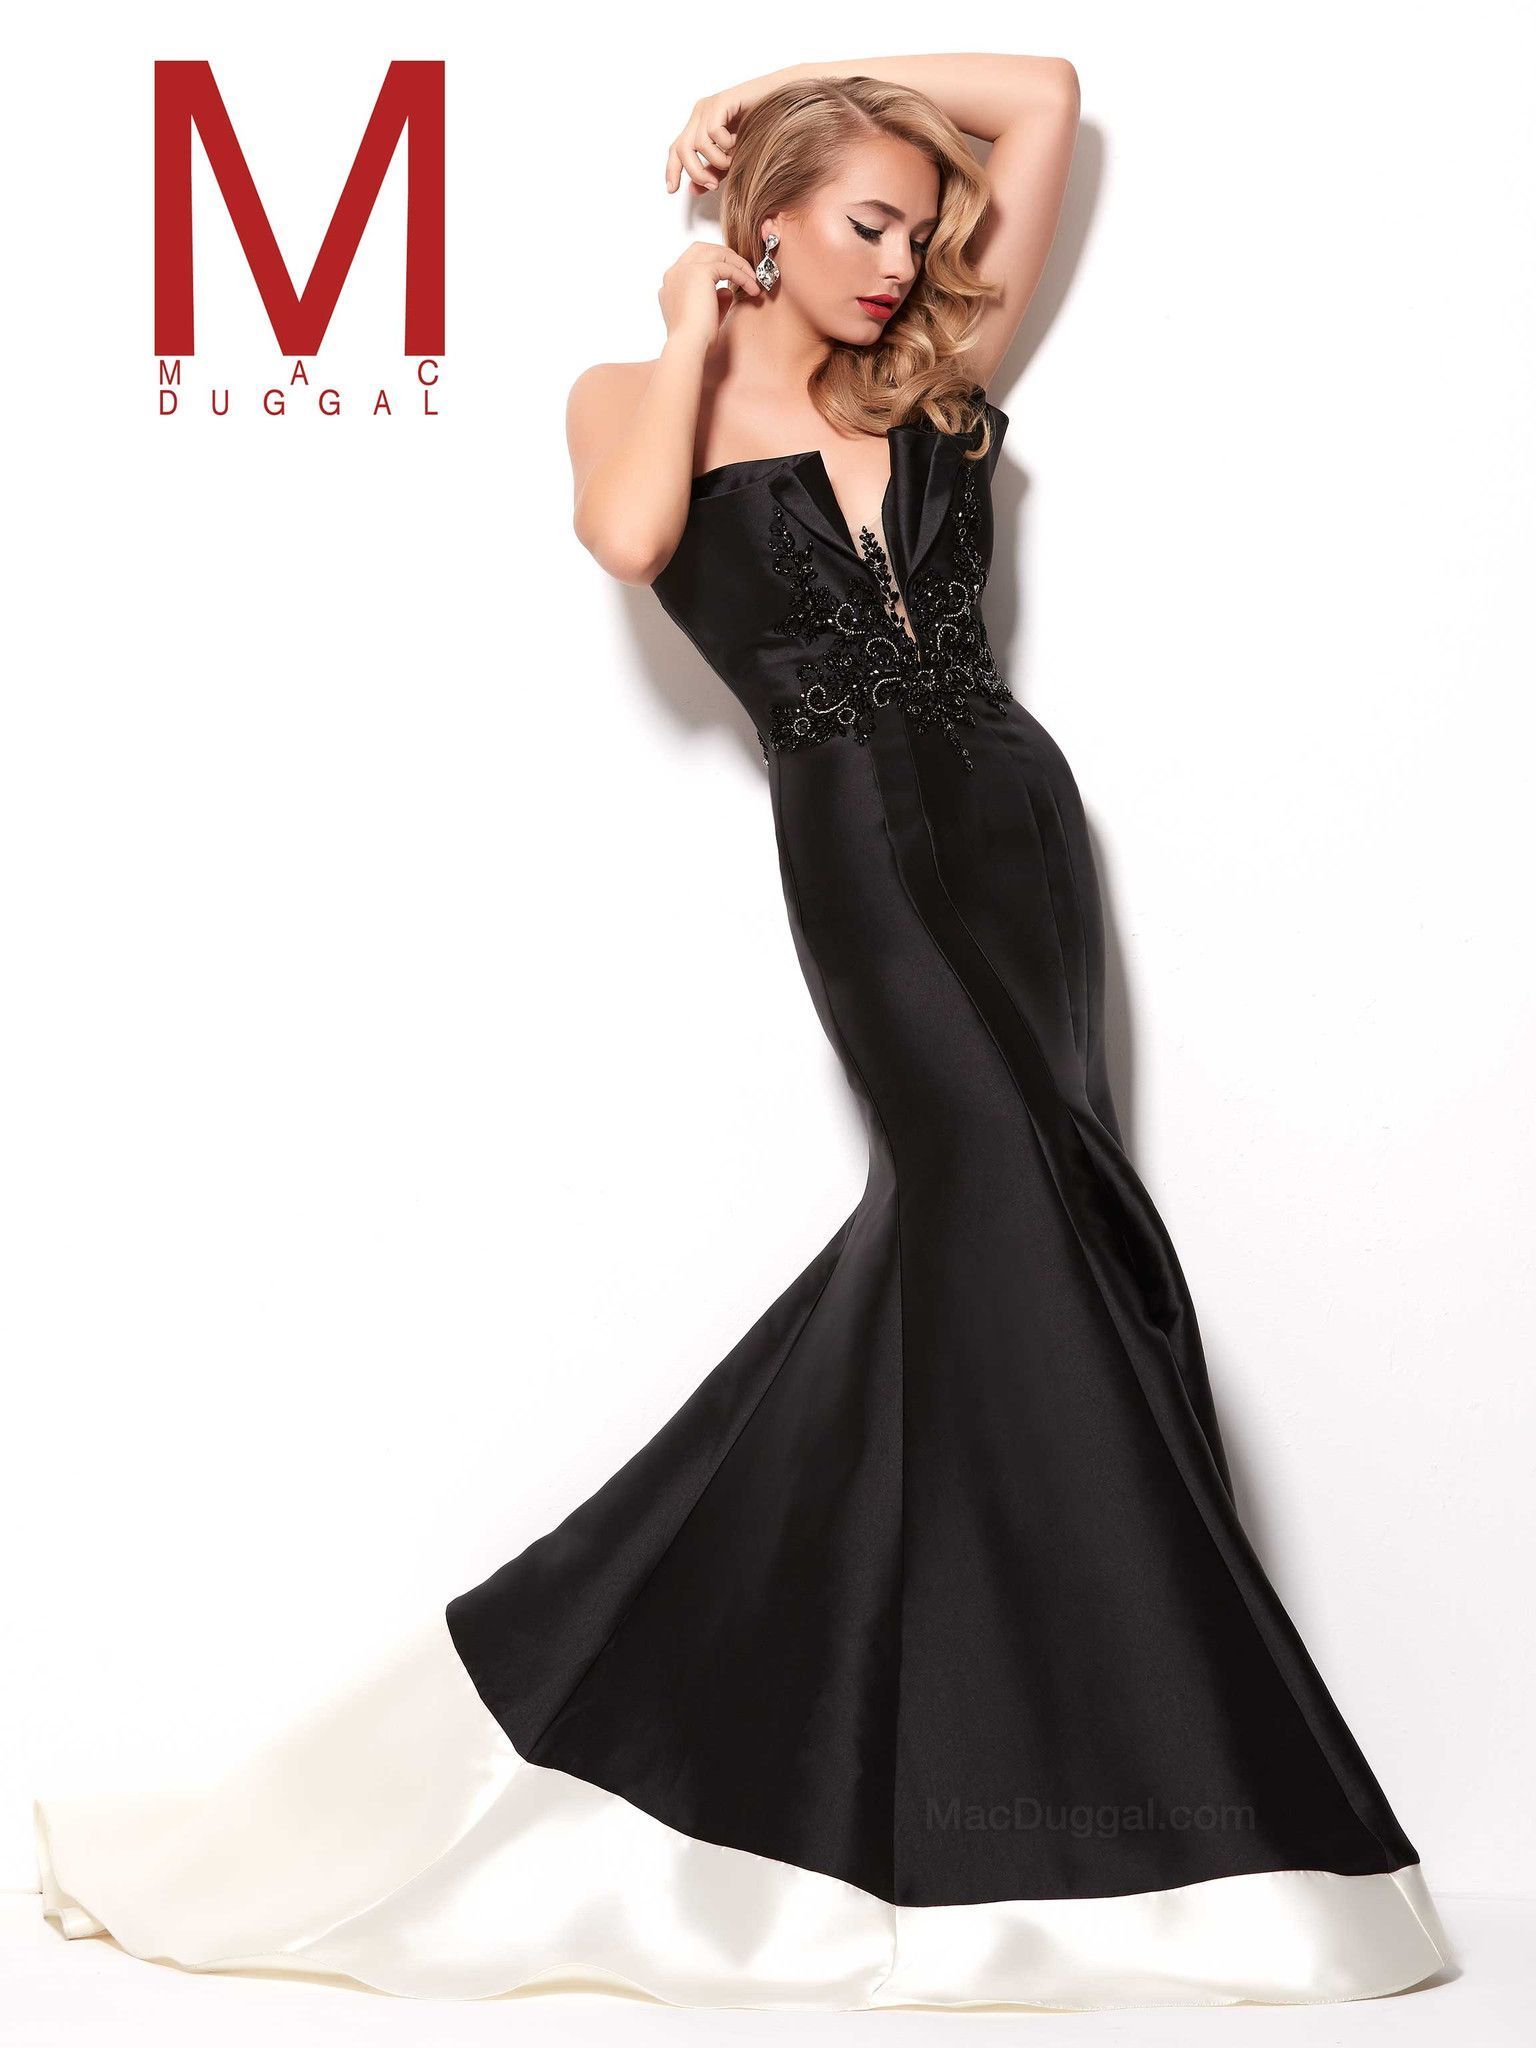 Mac duggal macs black white red and special occasion dresses